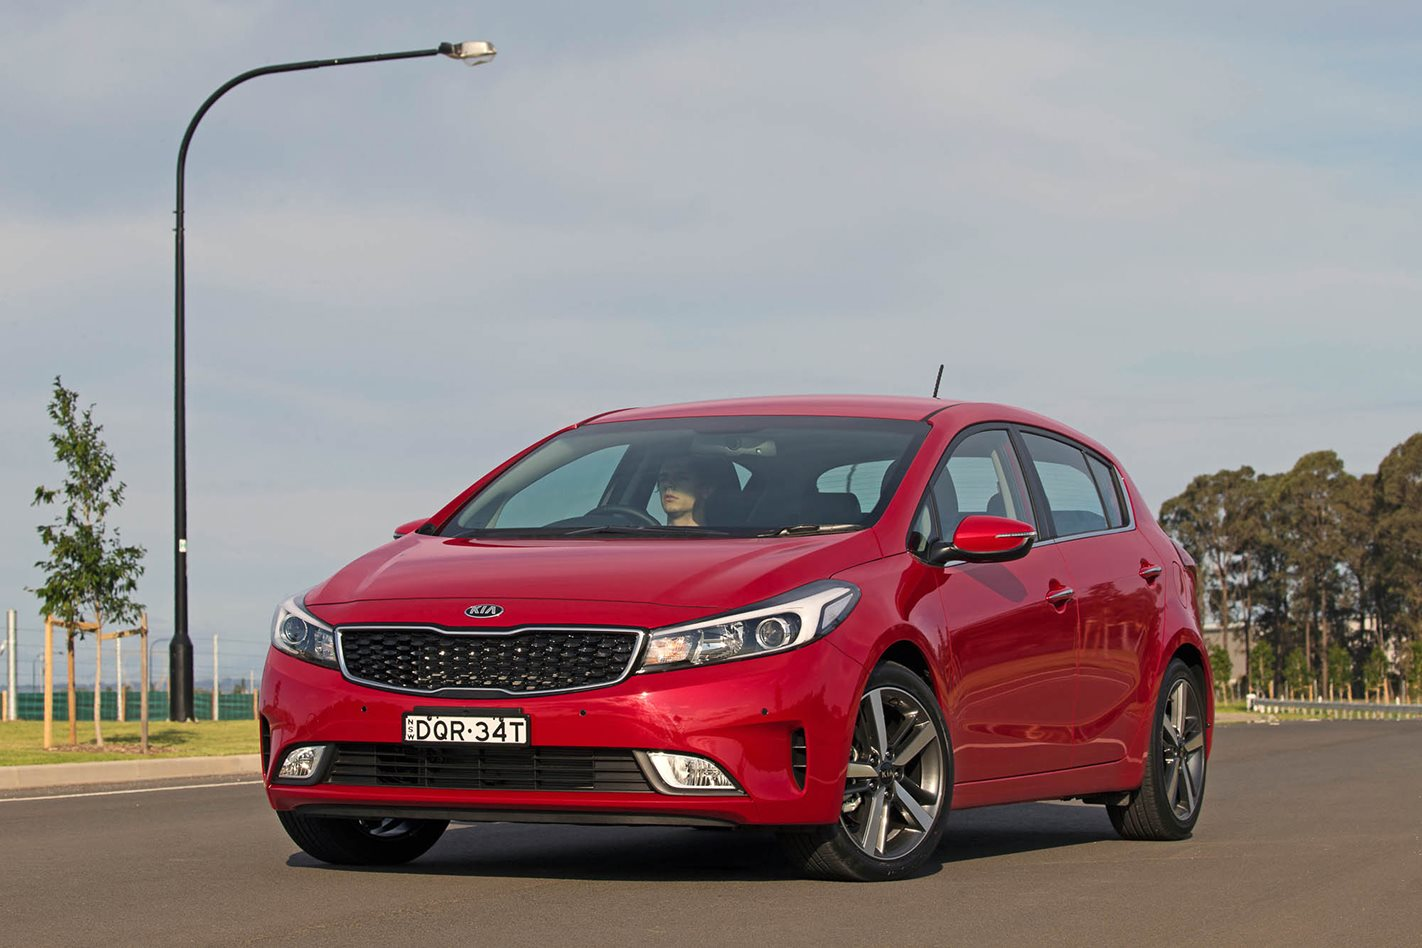 Kia Cerato Hatchback 2018 Review Price Features Whichcar 2010 Toyota Corolla S Tinted Window